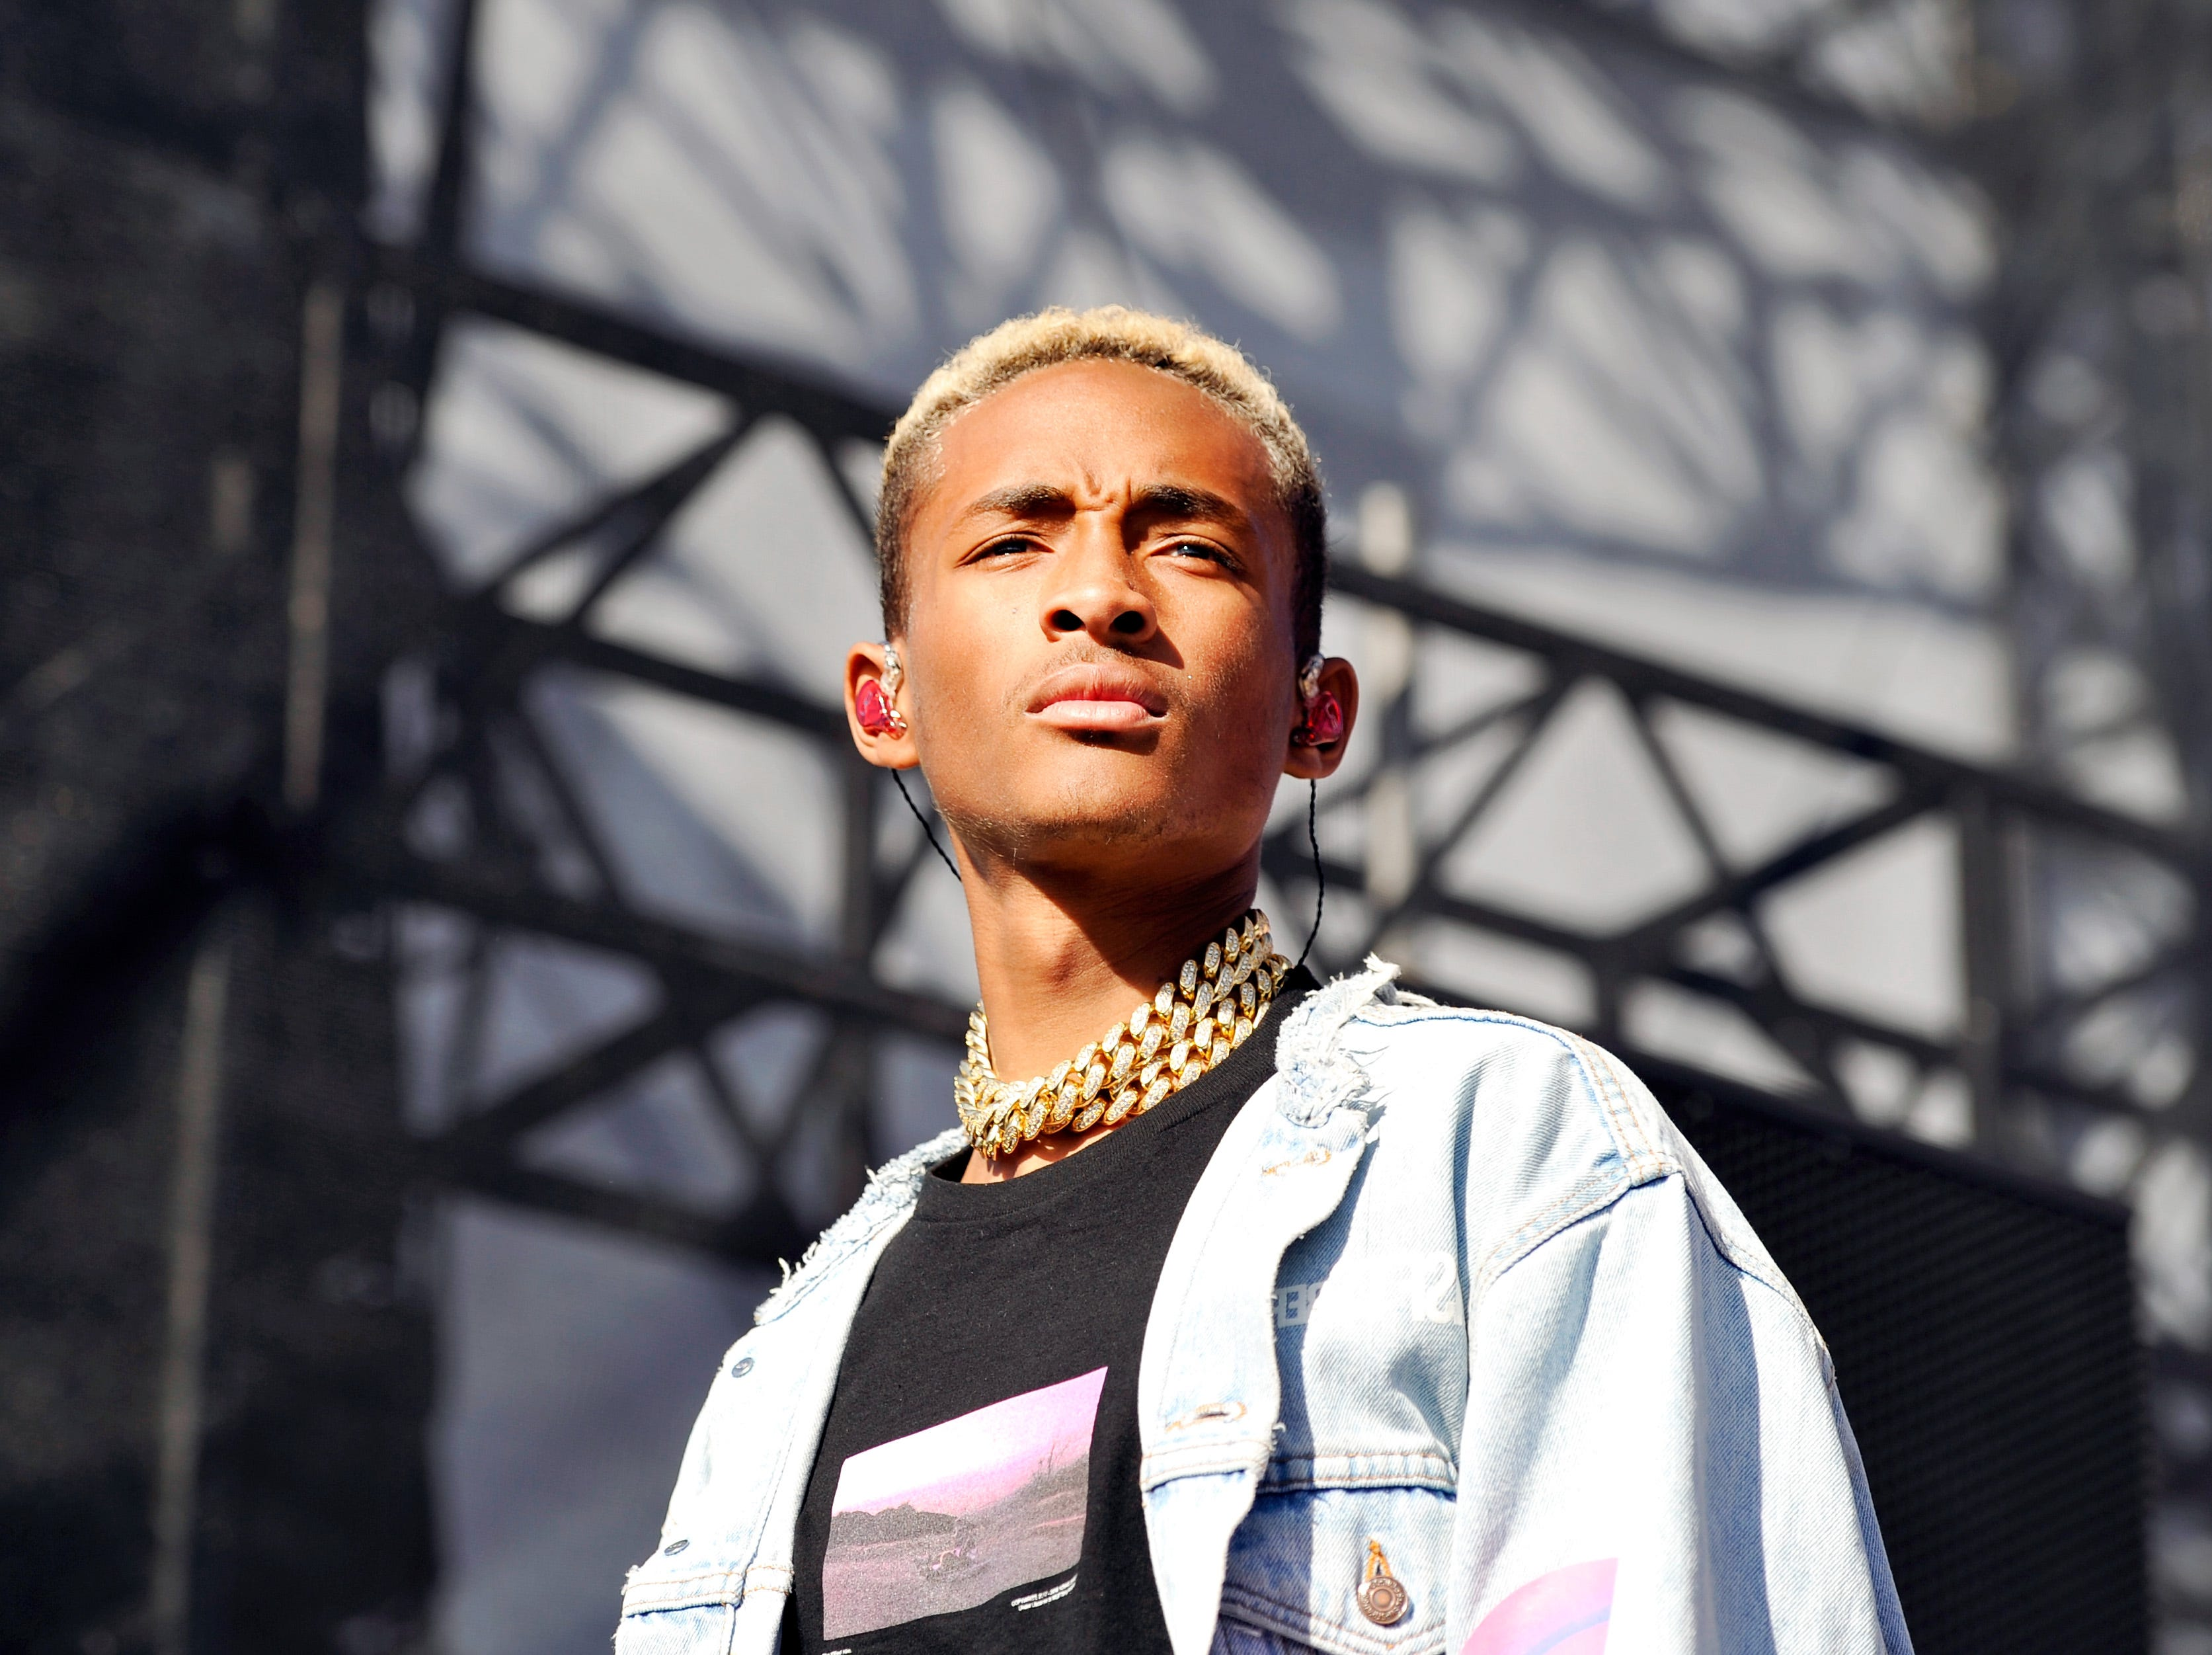 Jaden Smith calls Tyler the Creator his 'boyfriend' and Twitter can't tell if he's joking